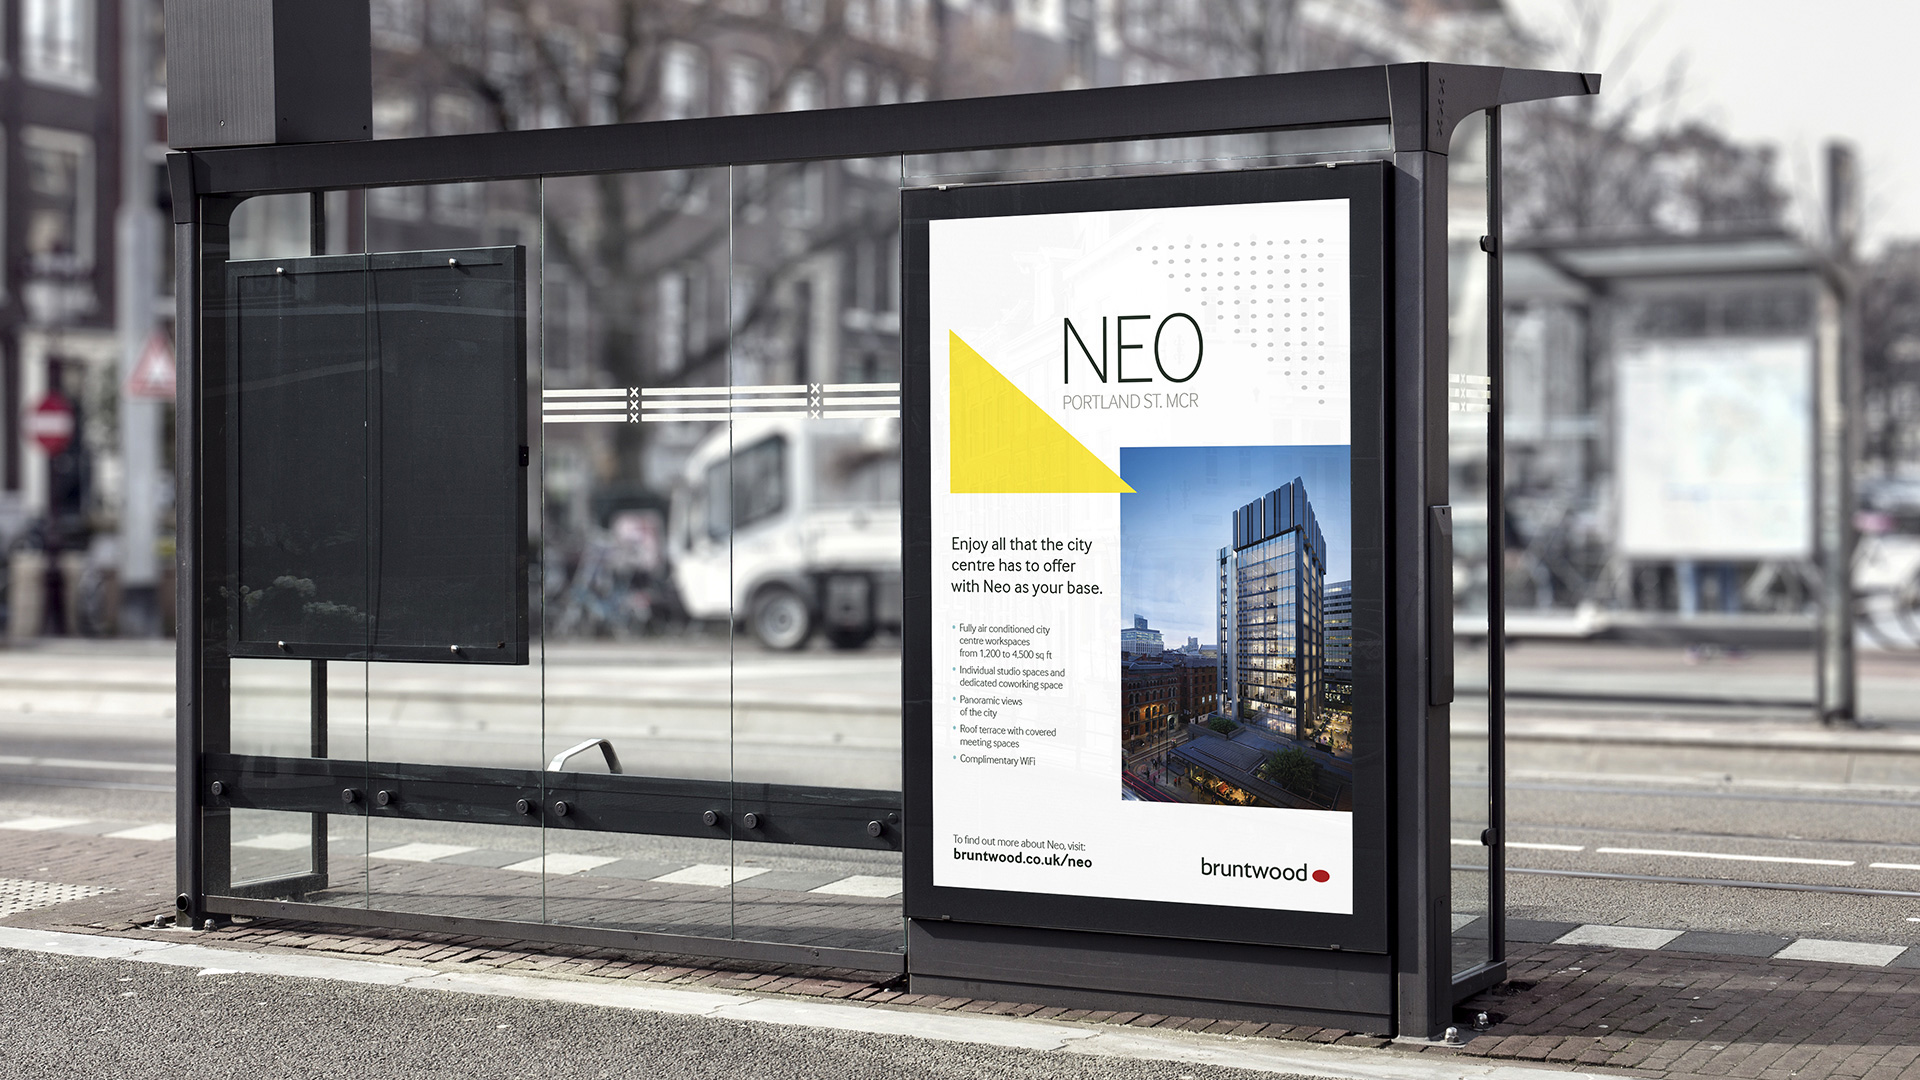 Image of 6 sheet advertising for Bruntwood Neo